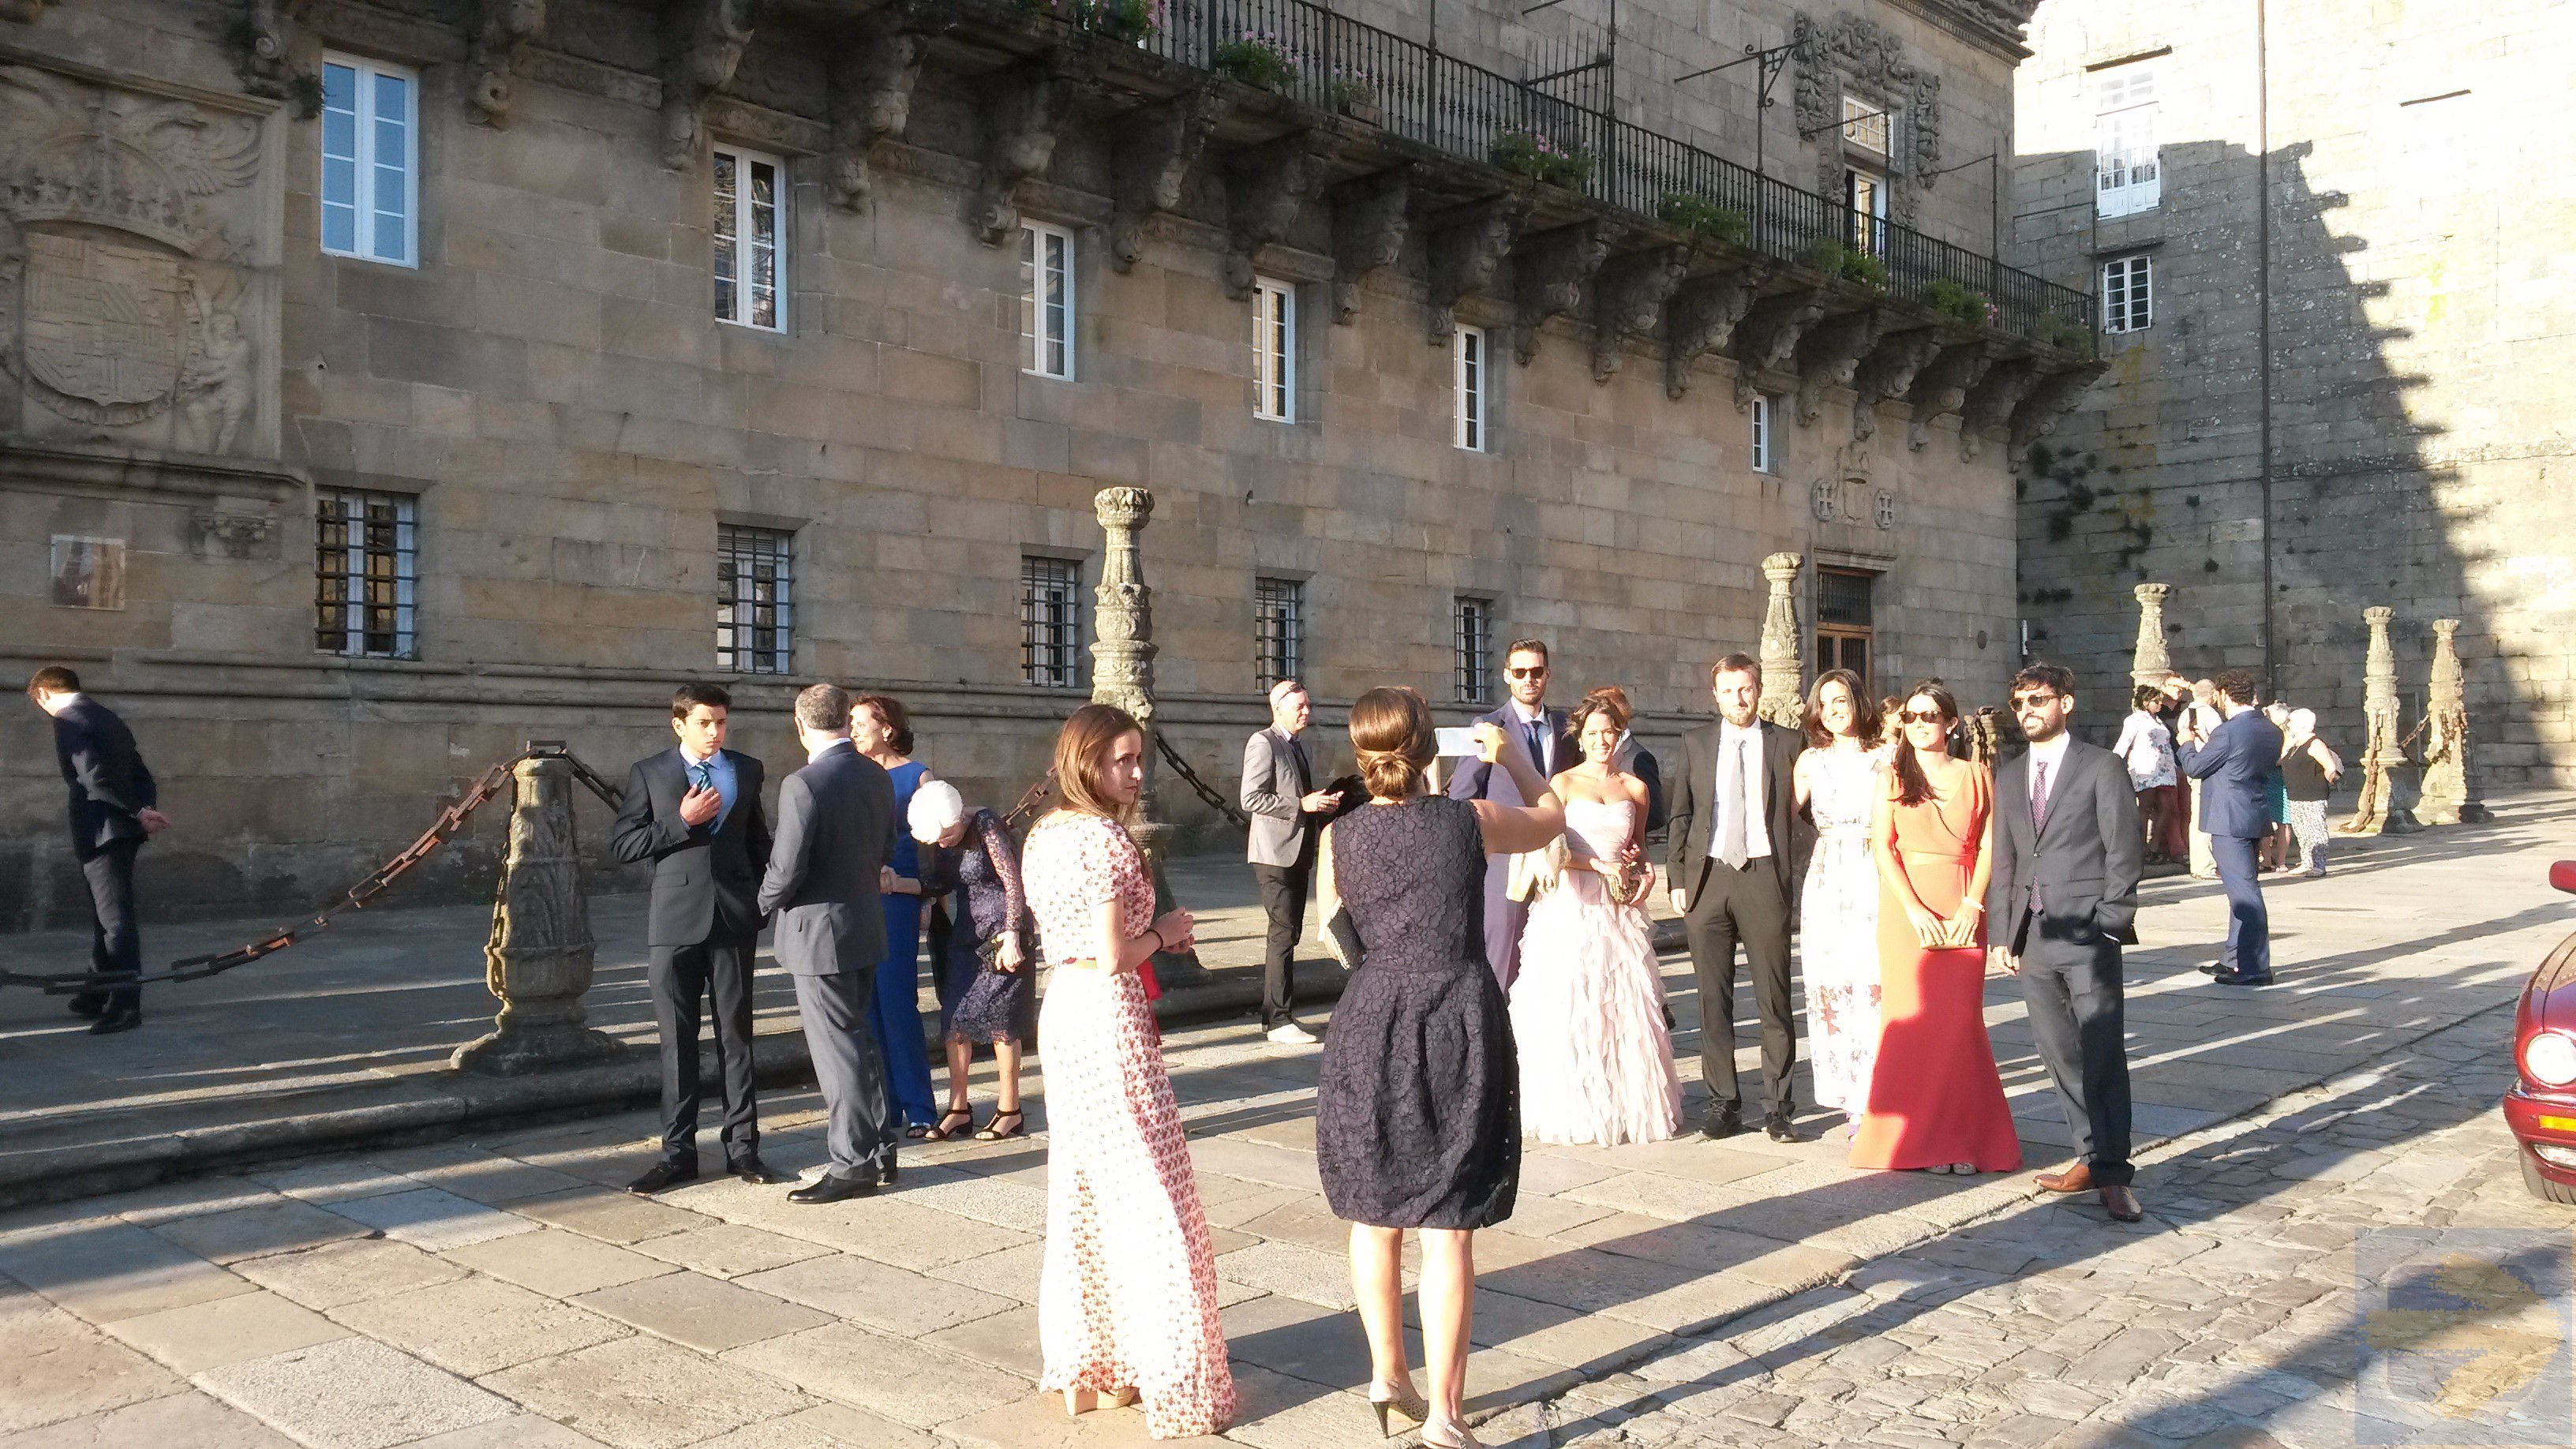 Posh wedding at parador